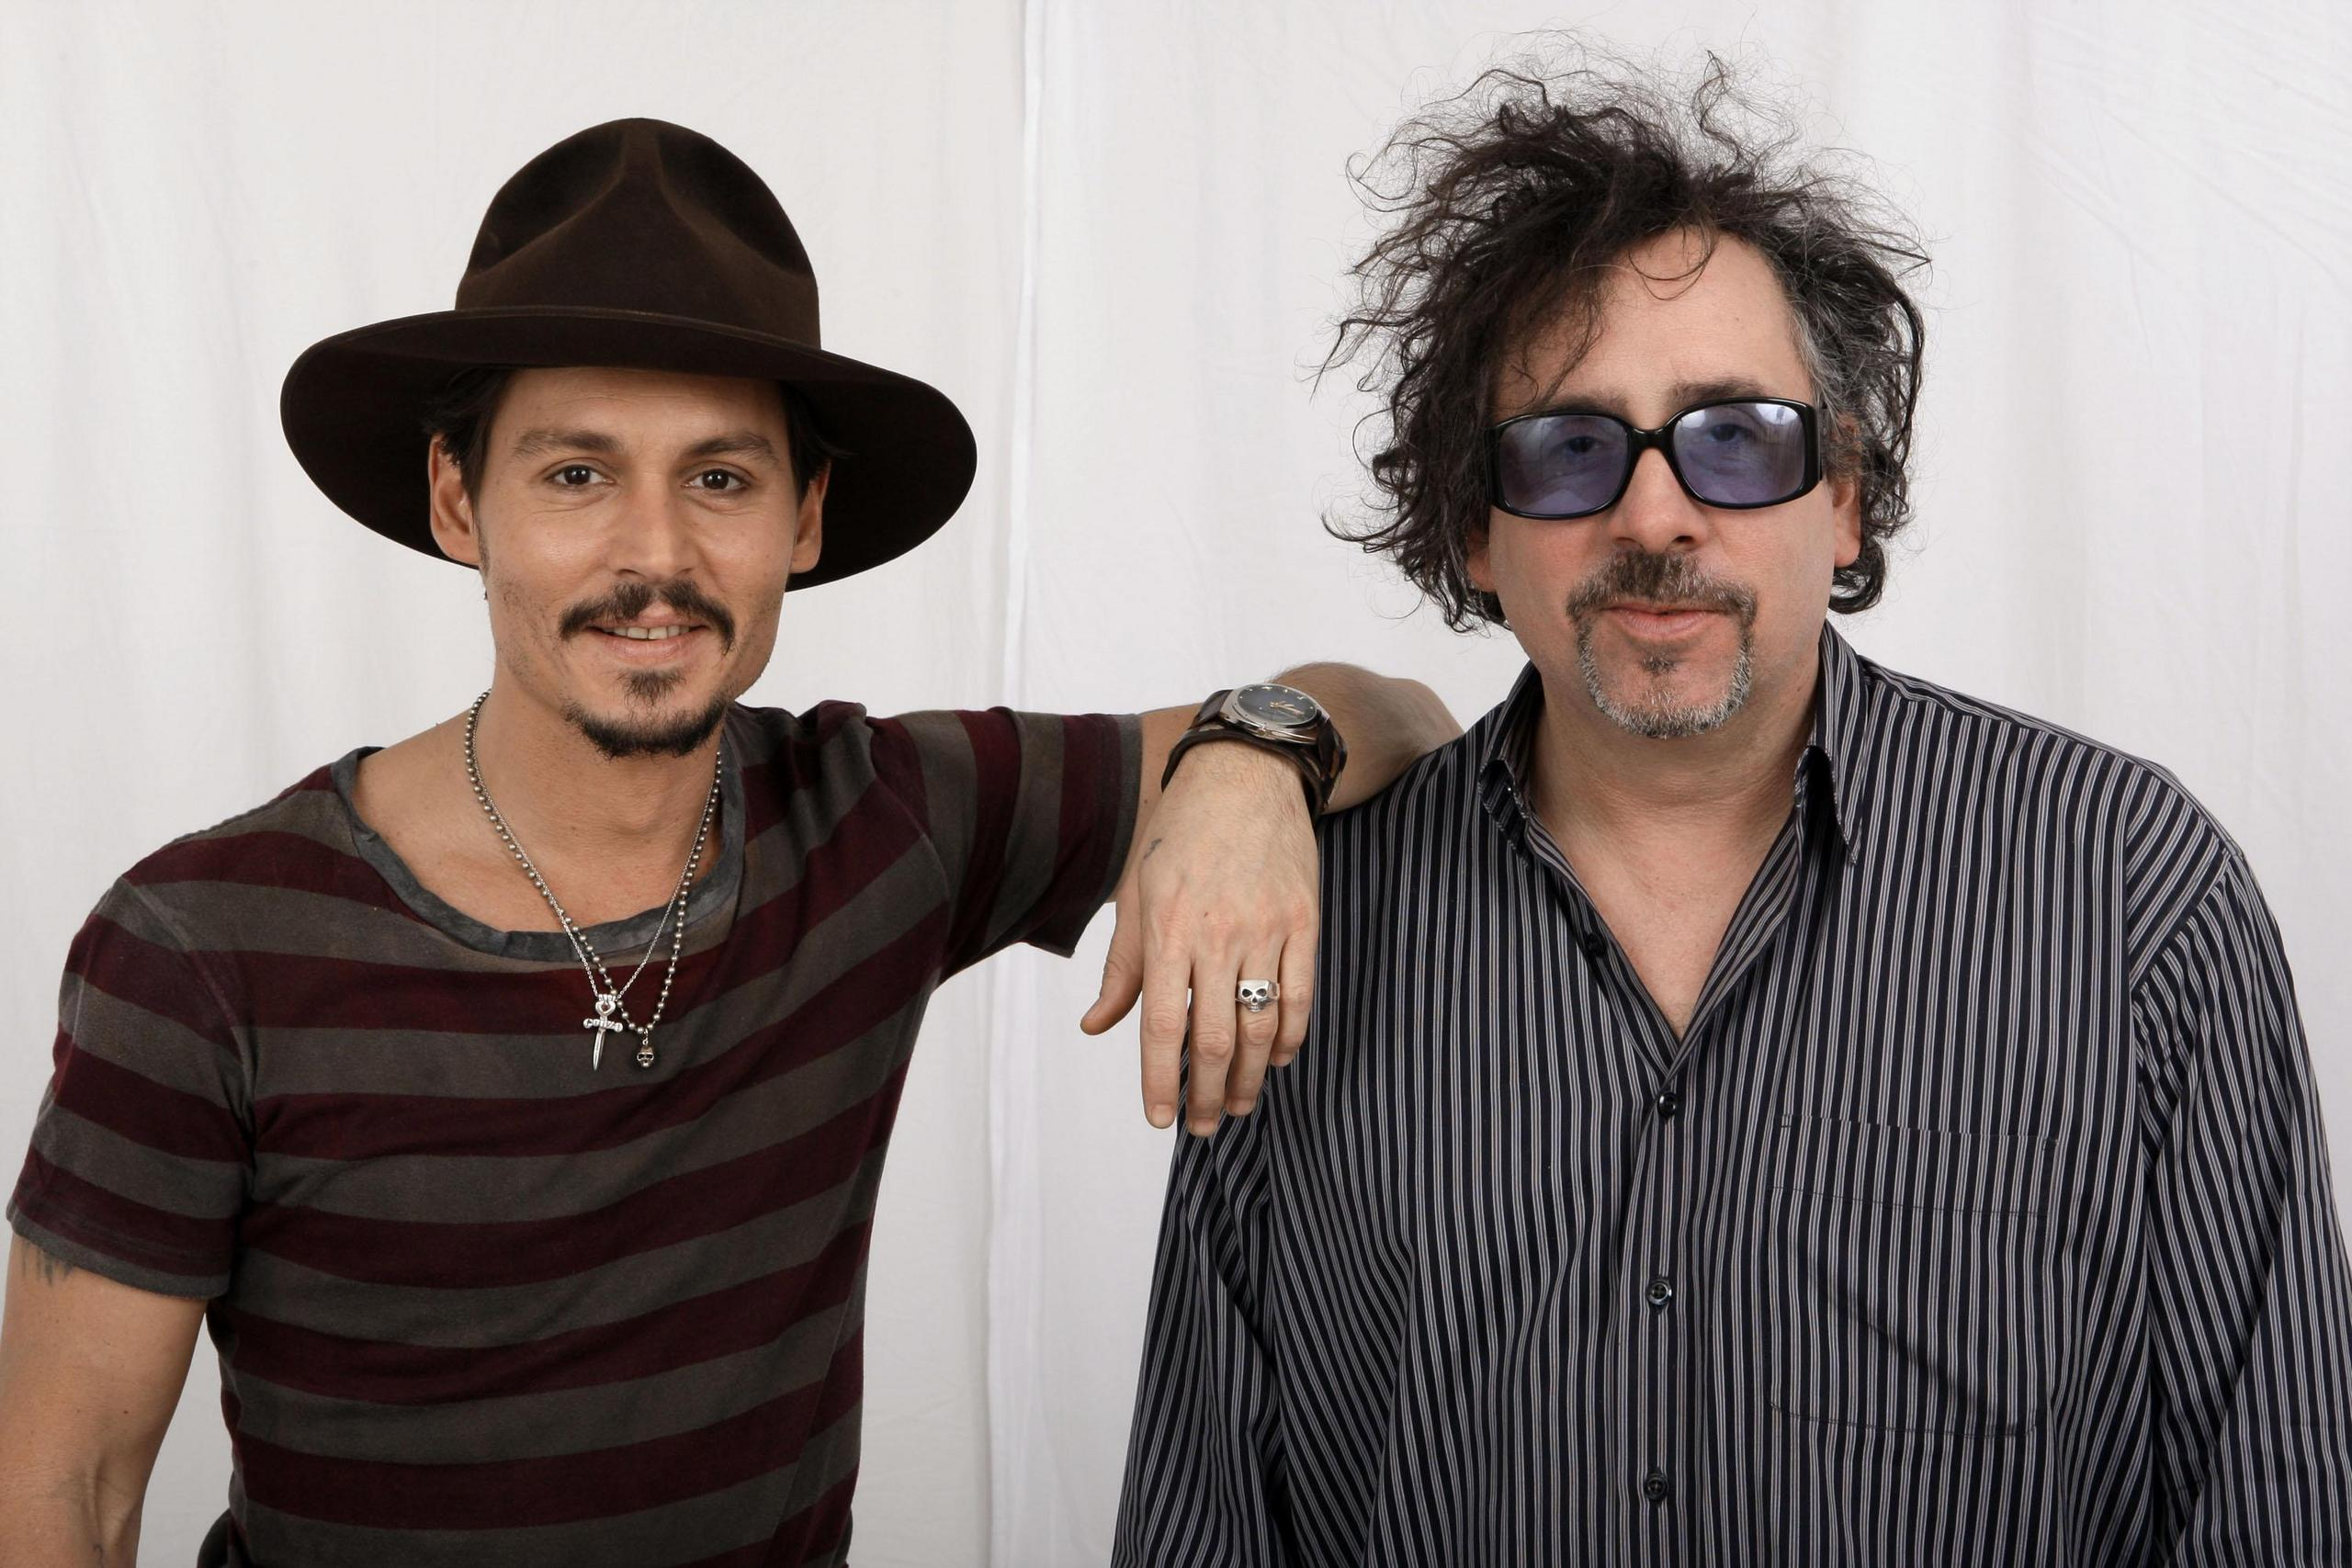 johnny and tim wallaper - photo #23